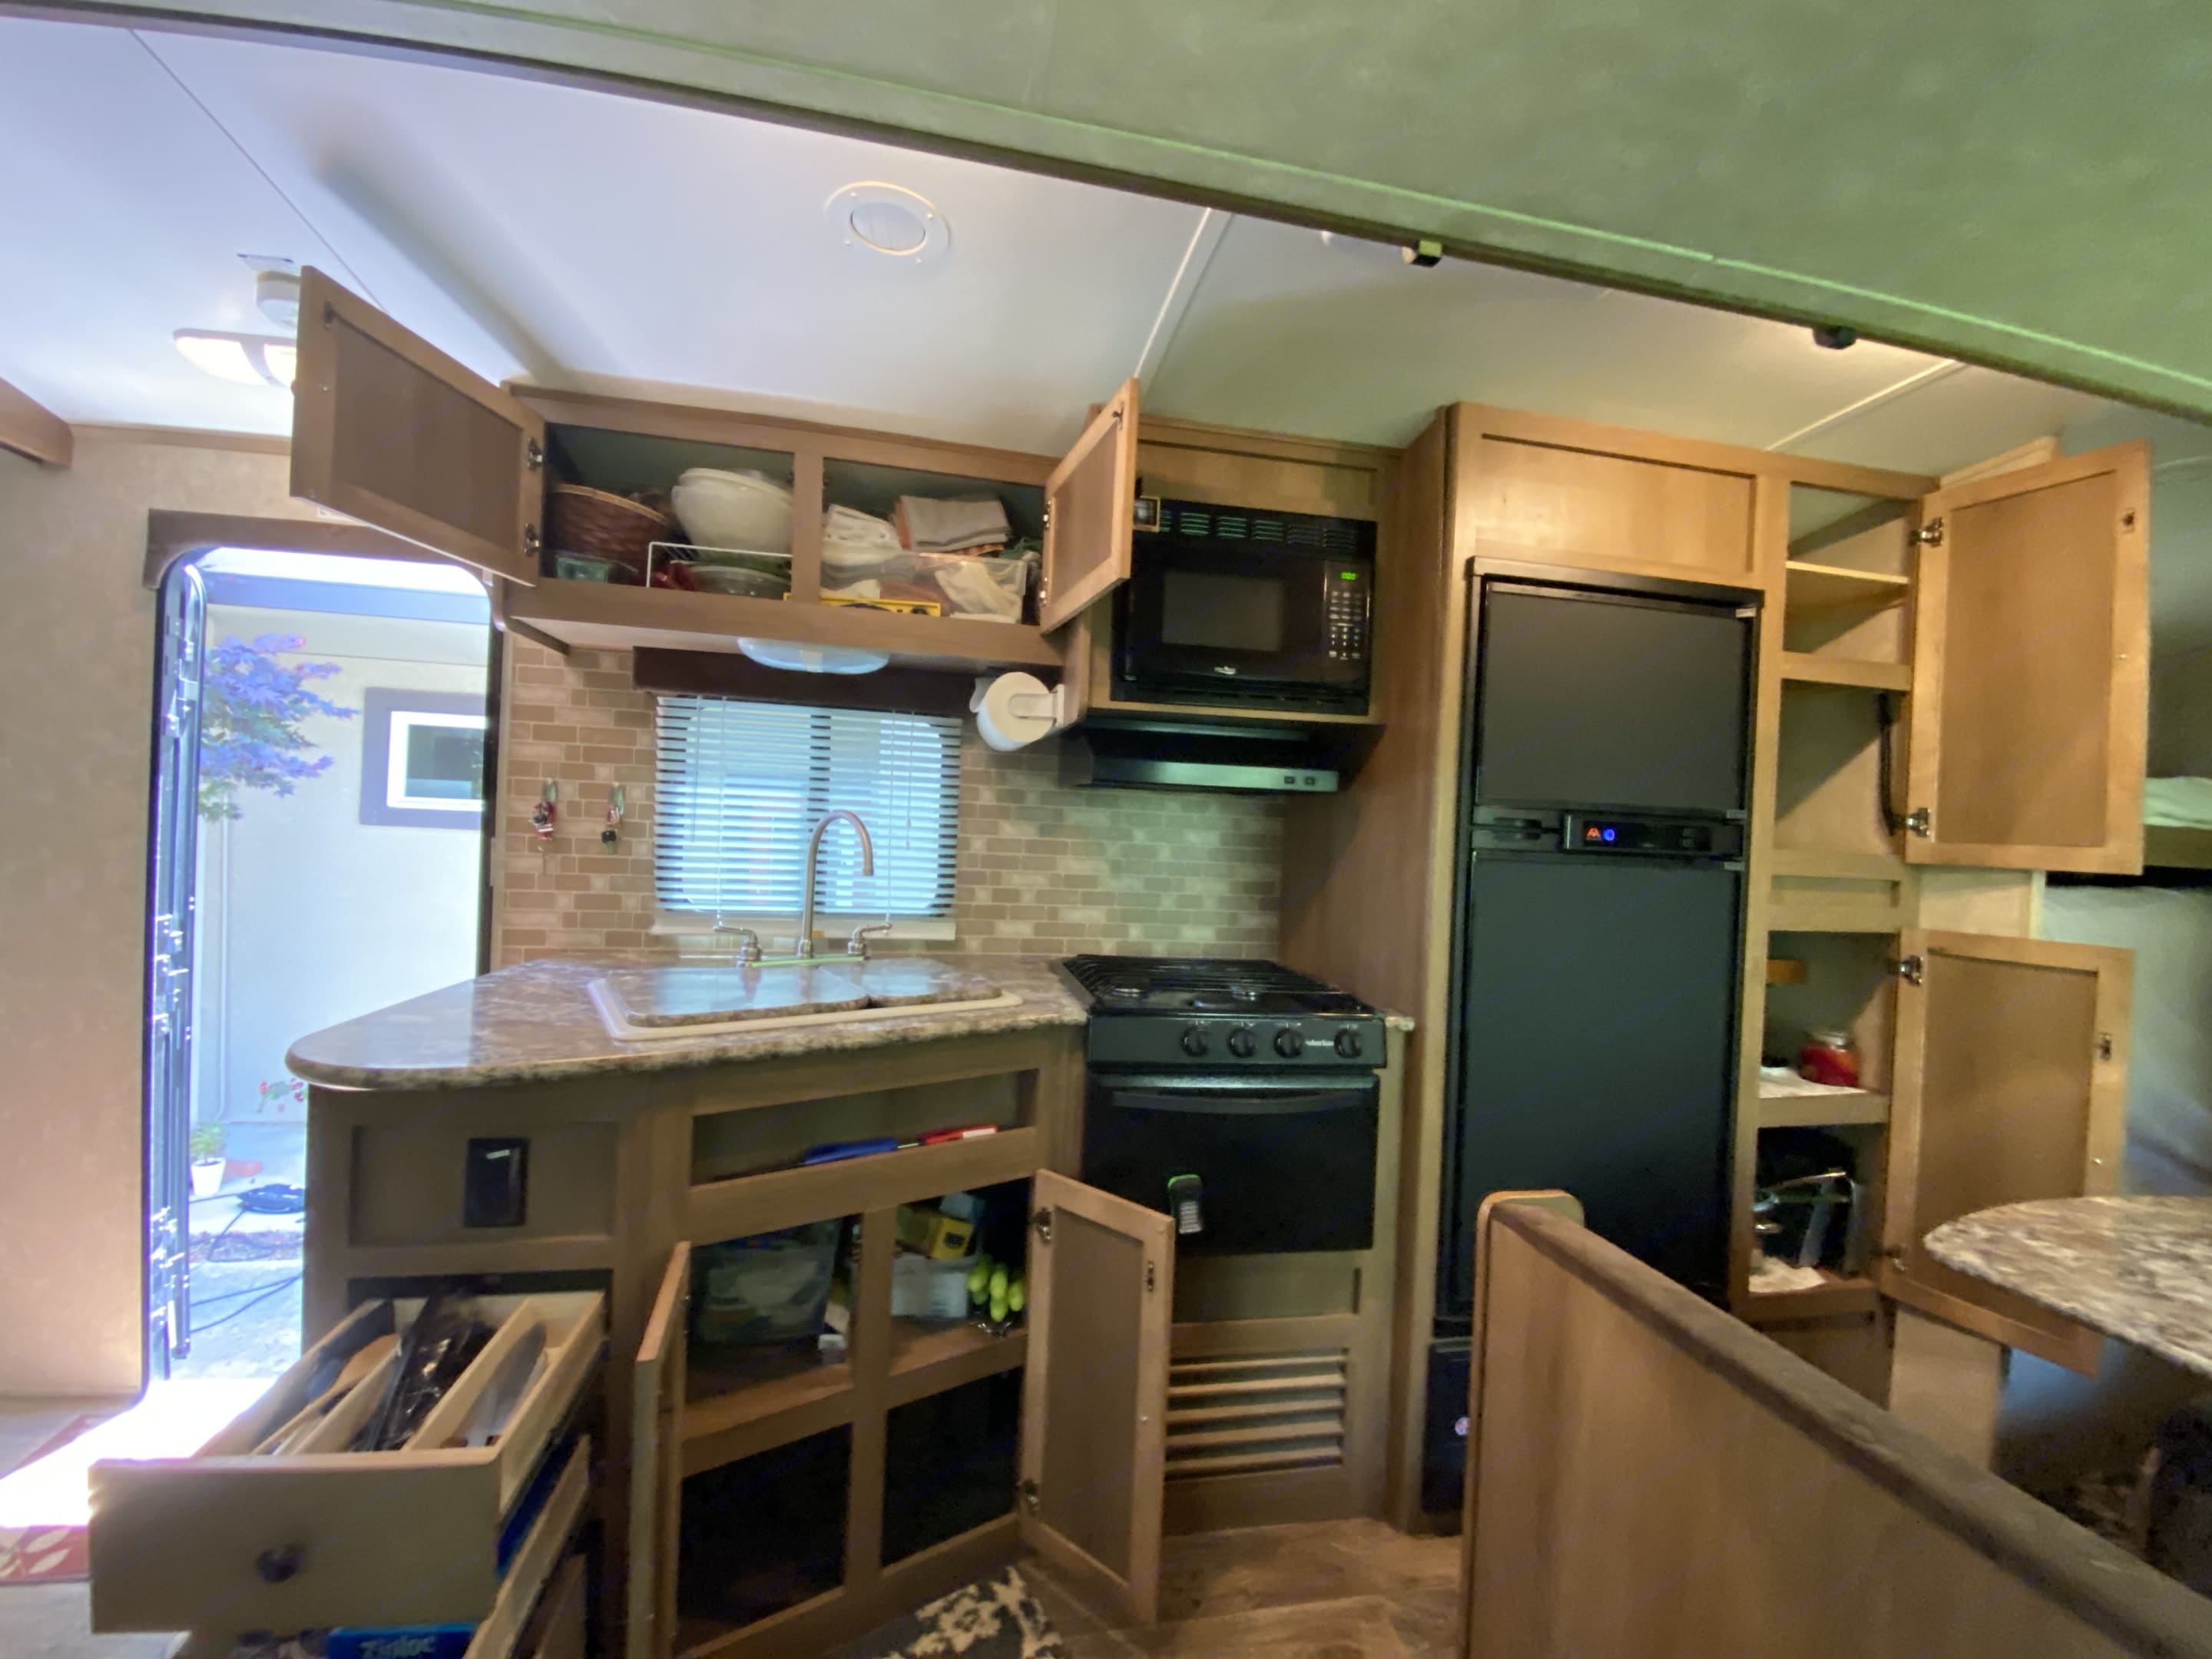 Lots of cabinet space in the kitchen. CruiserRvCorp ShadowCruiser 2014